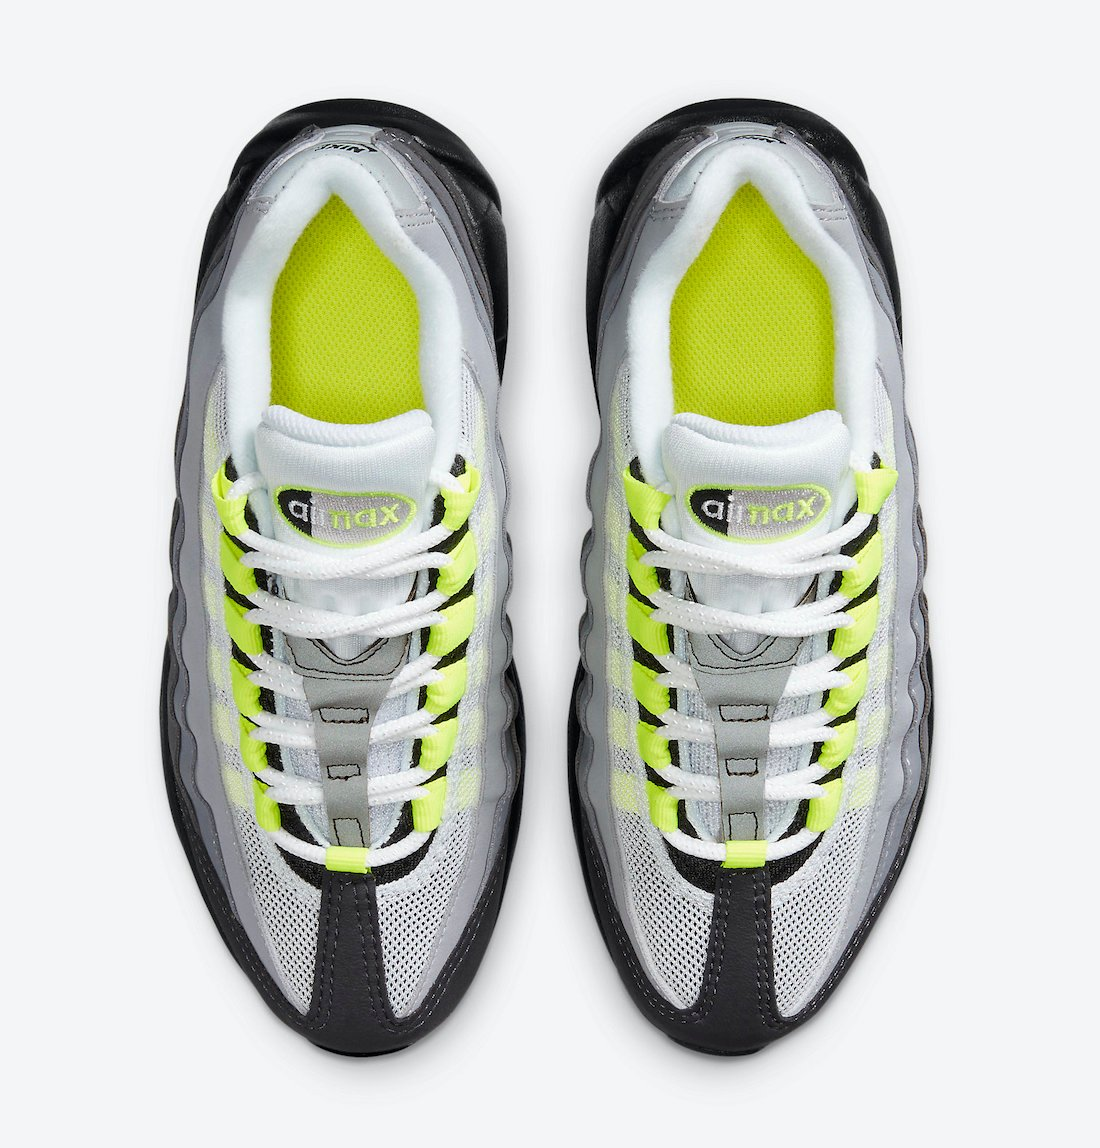 Nike Air Max 95 OG Neon CZ0910-001 Release Date